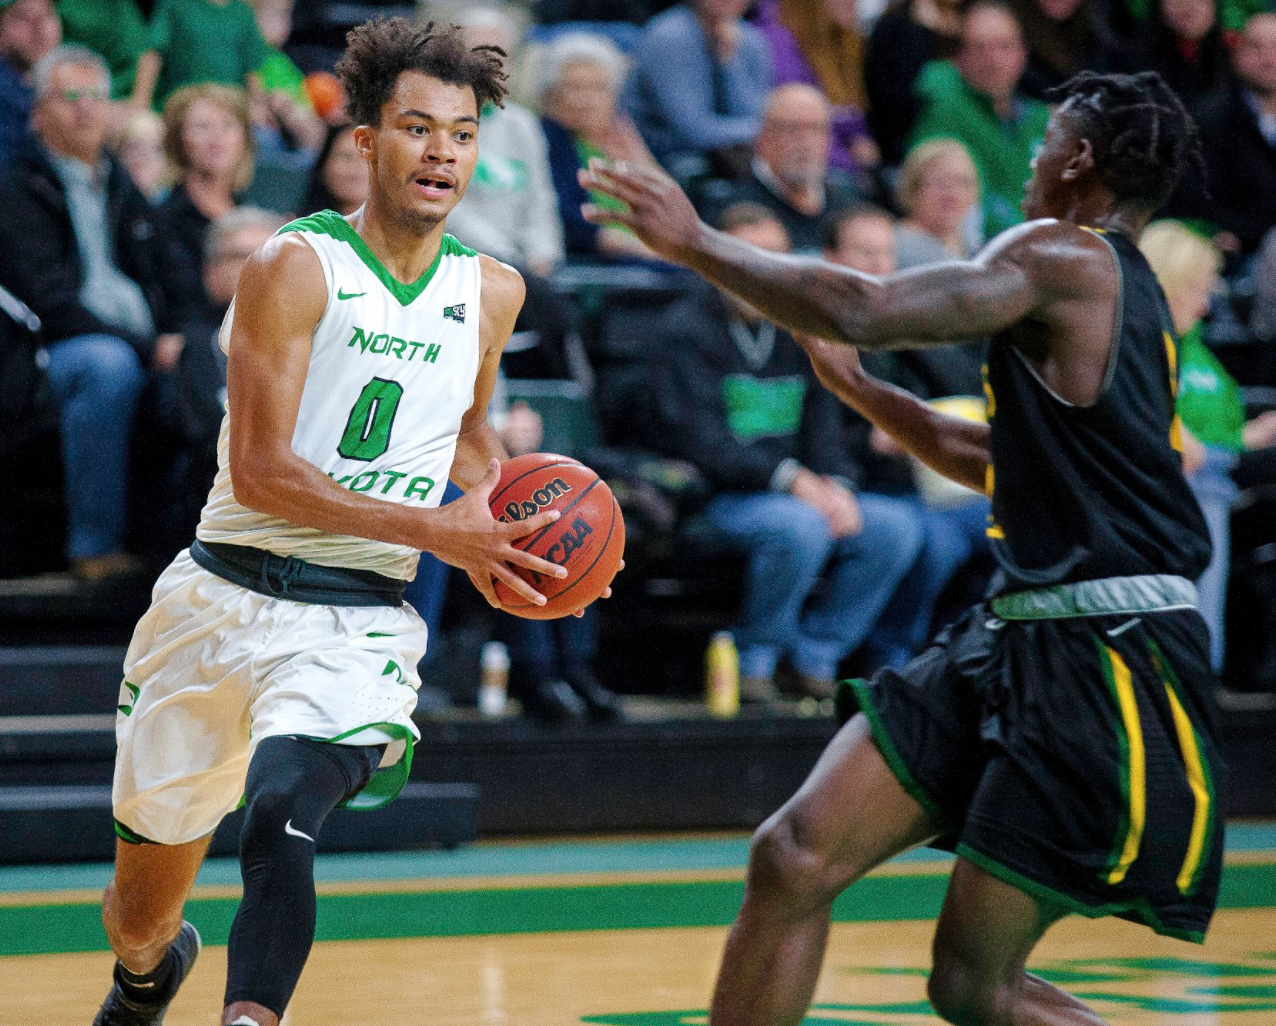 UND guard Geno Crandall drives to the hoop against Presentation College earlier this season at the Betty Engelstad Sioux Center.